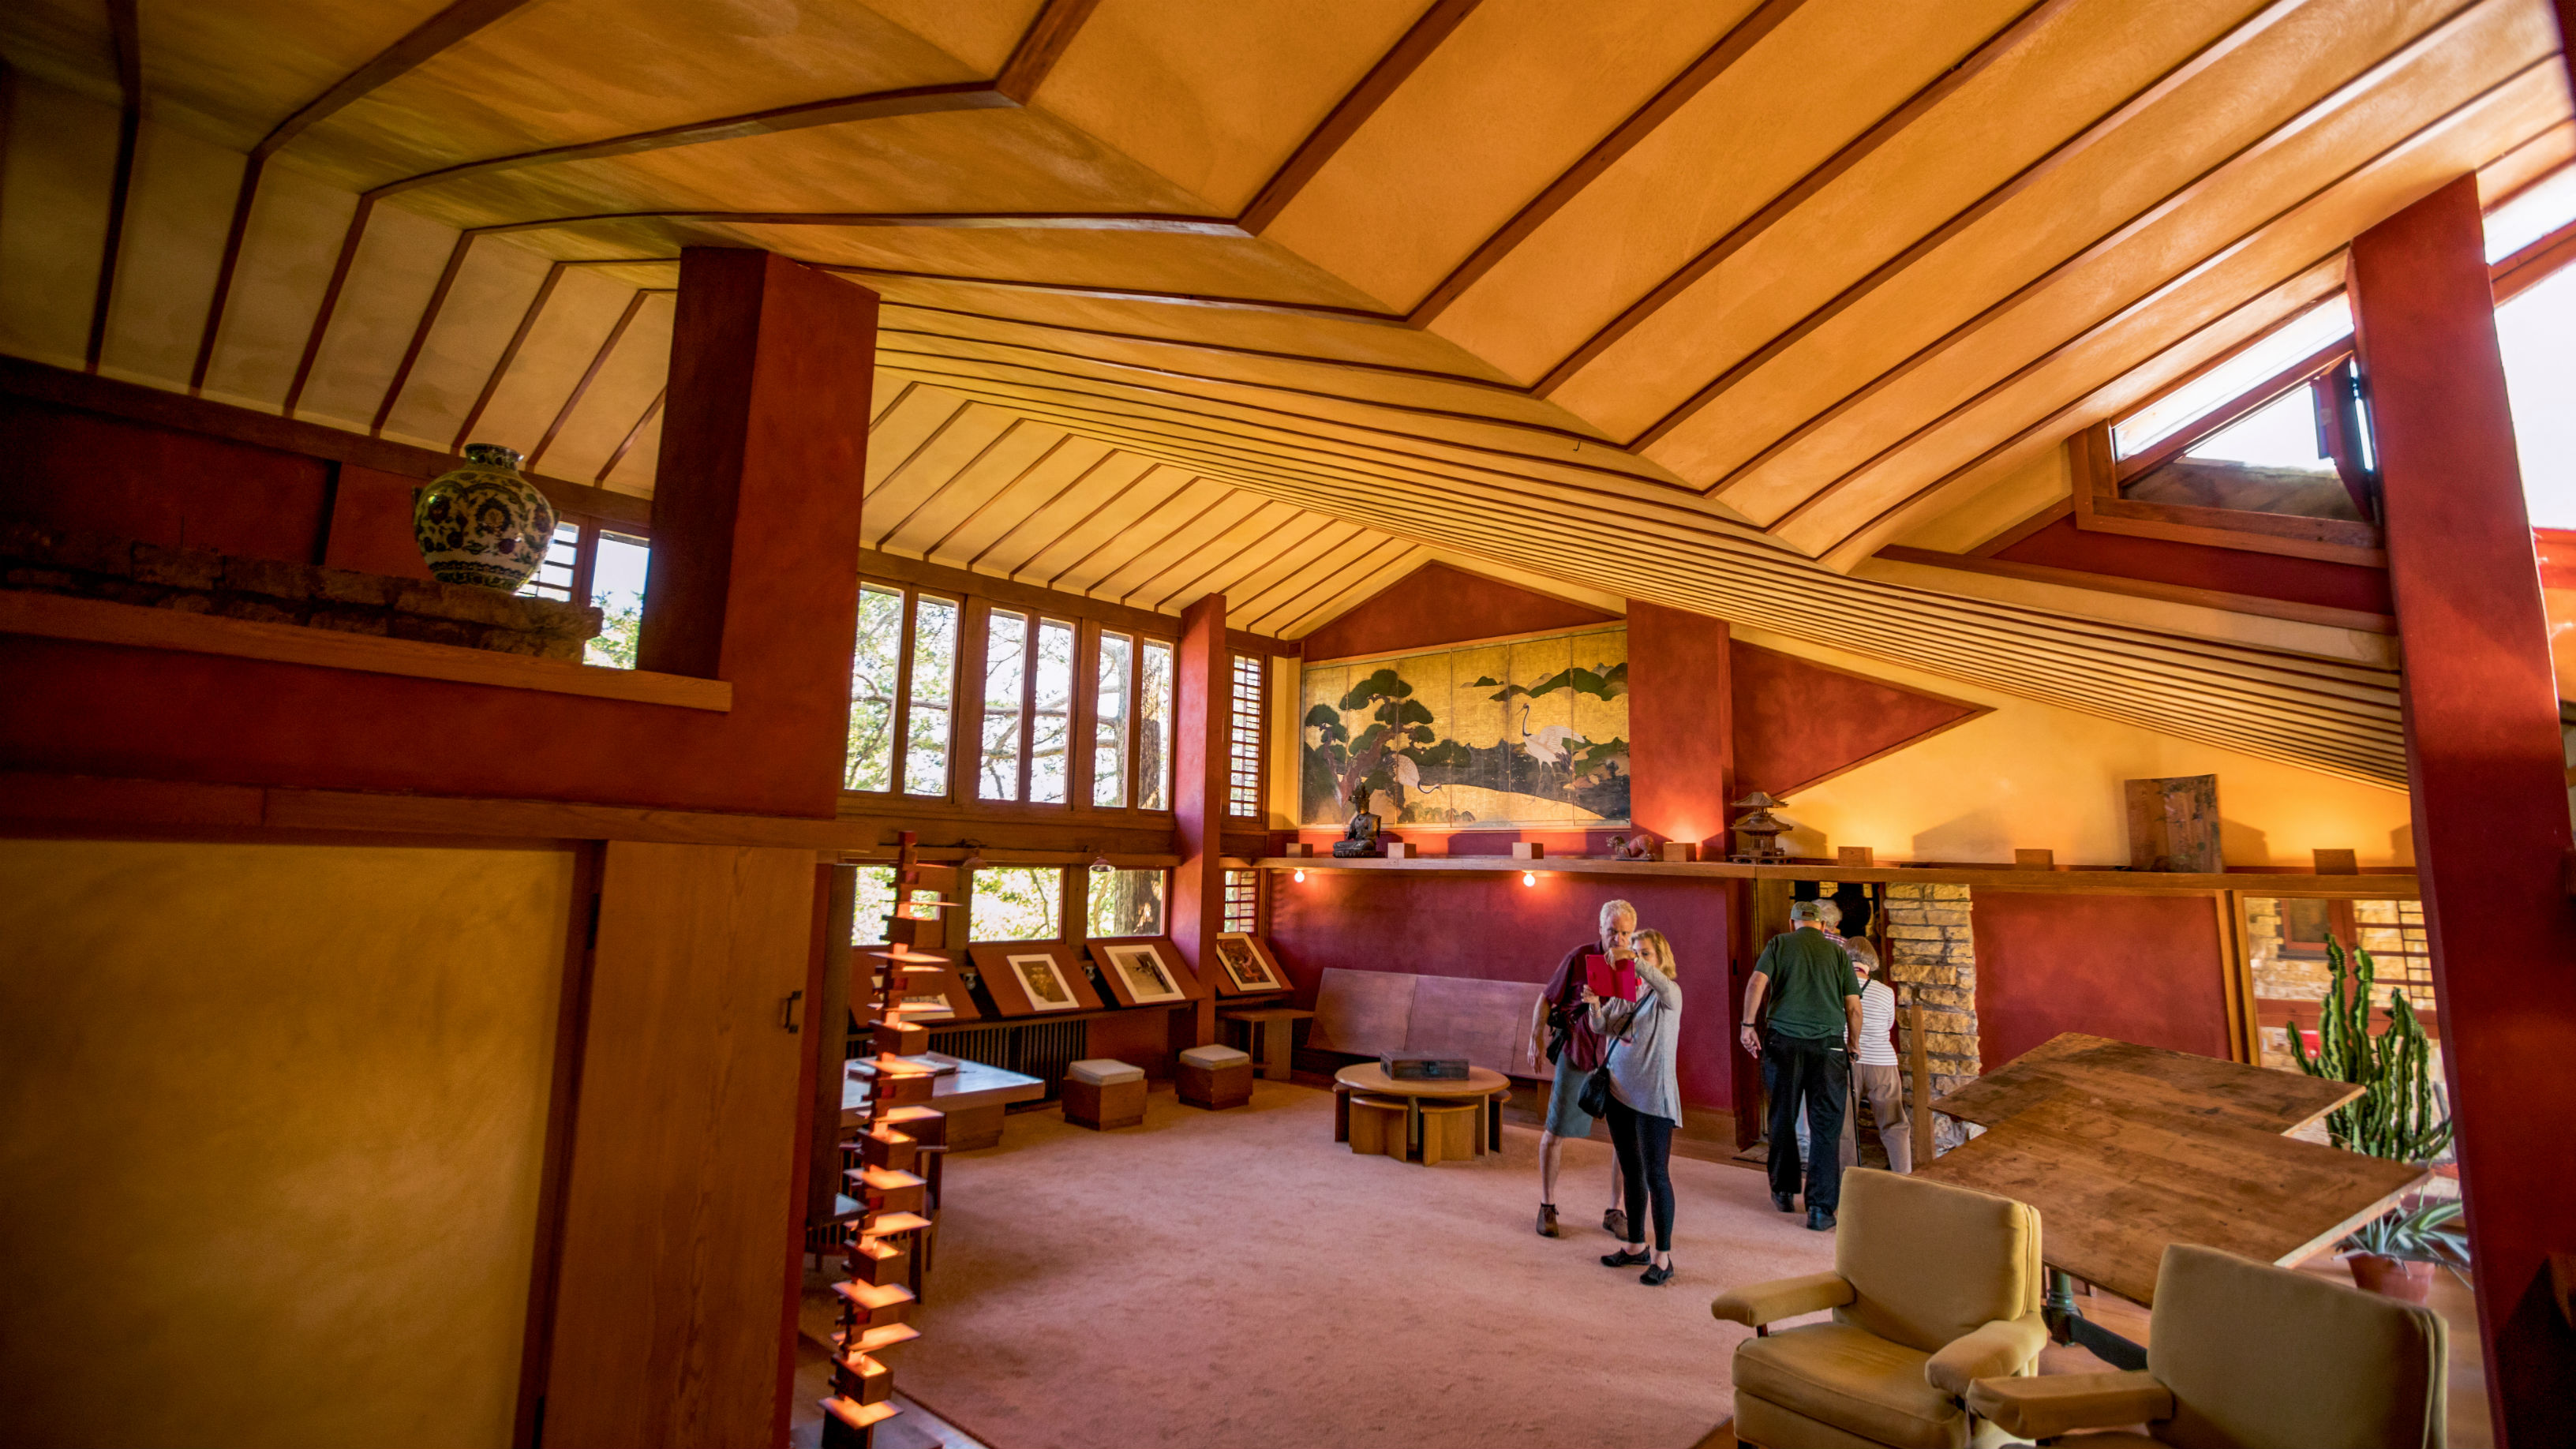 Tour frank lloyd wright architecture travel wisconsin - Frank lloyd wright architecture ...